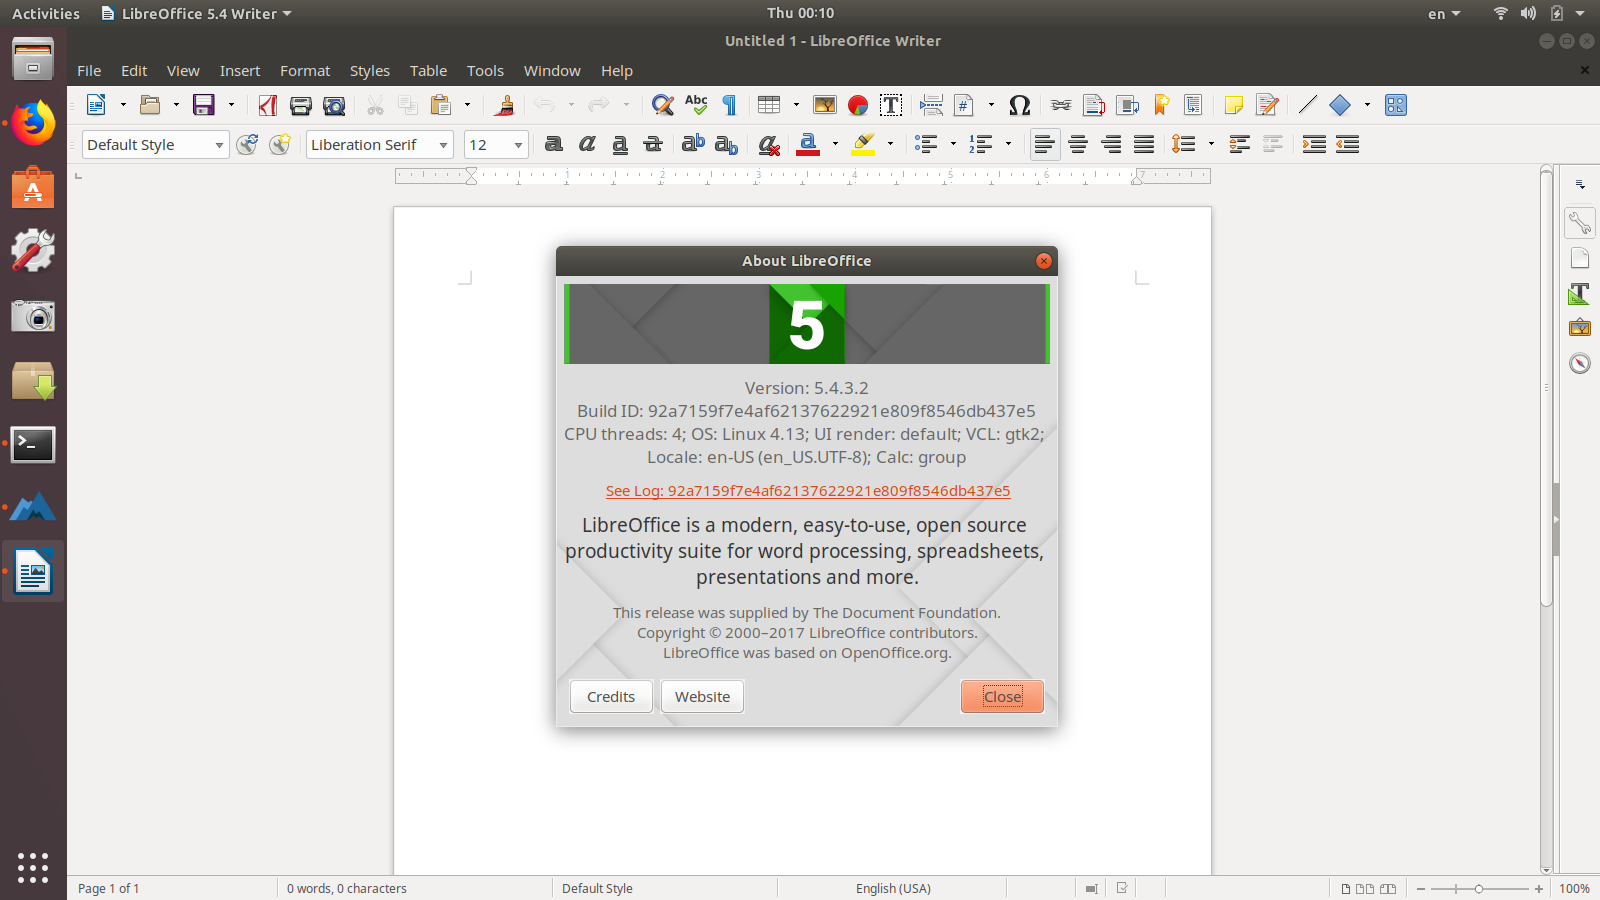 How to install program on Ubuntu: How to Install LibreOffice